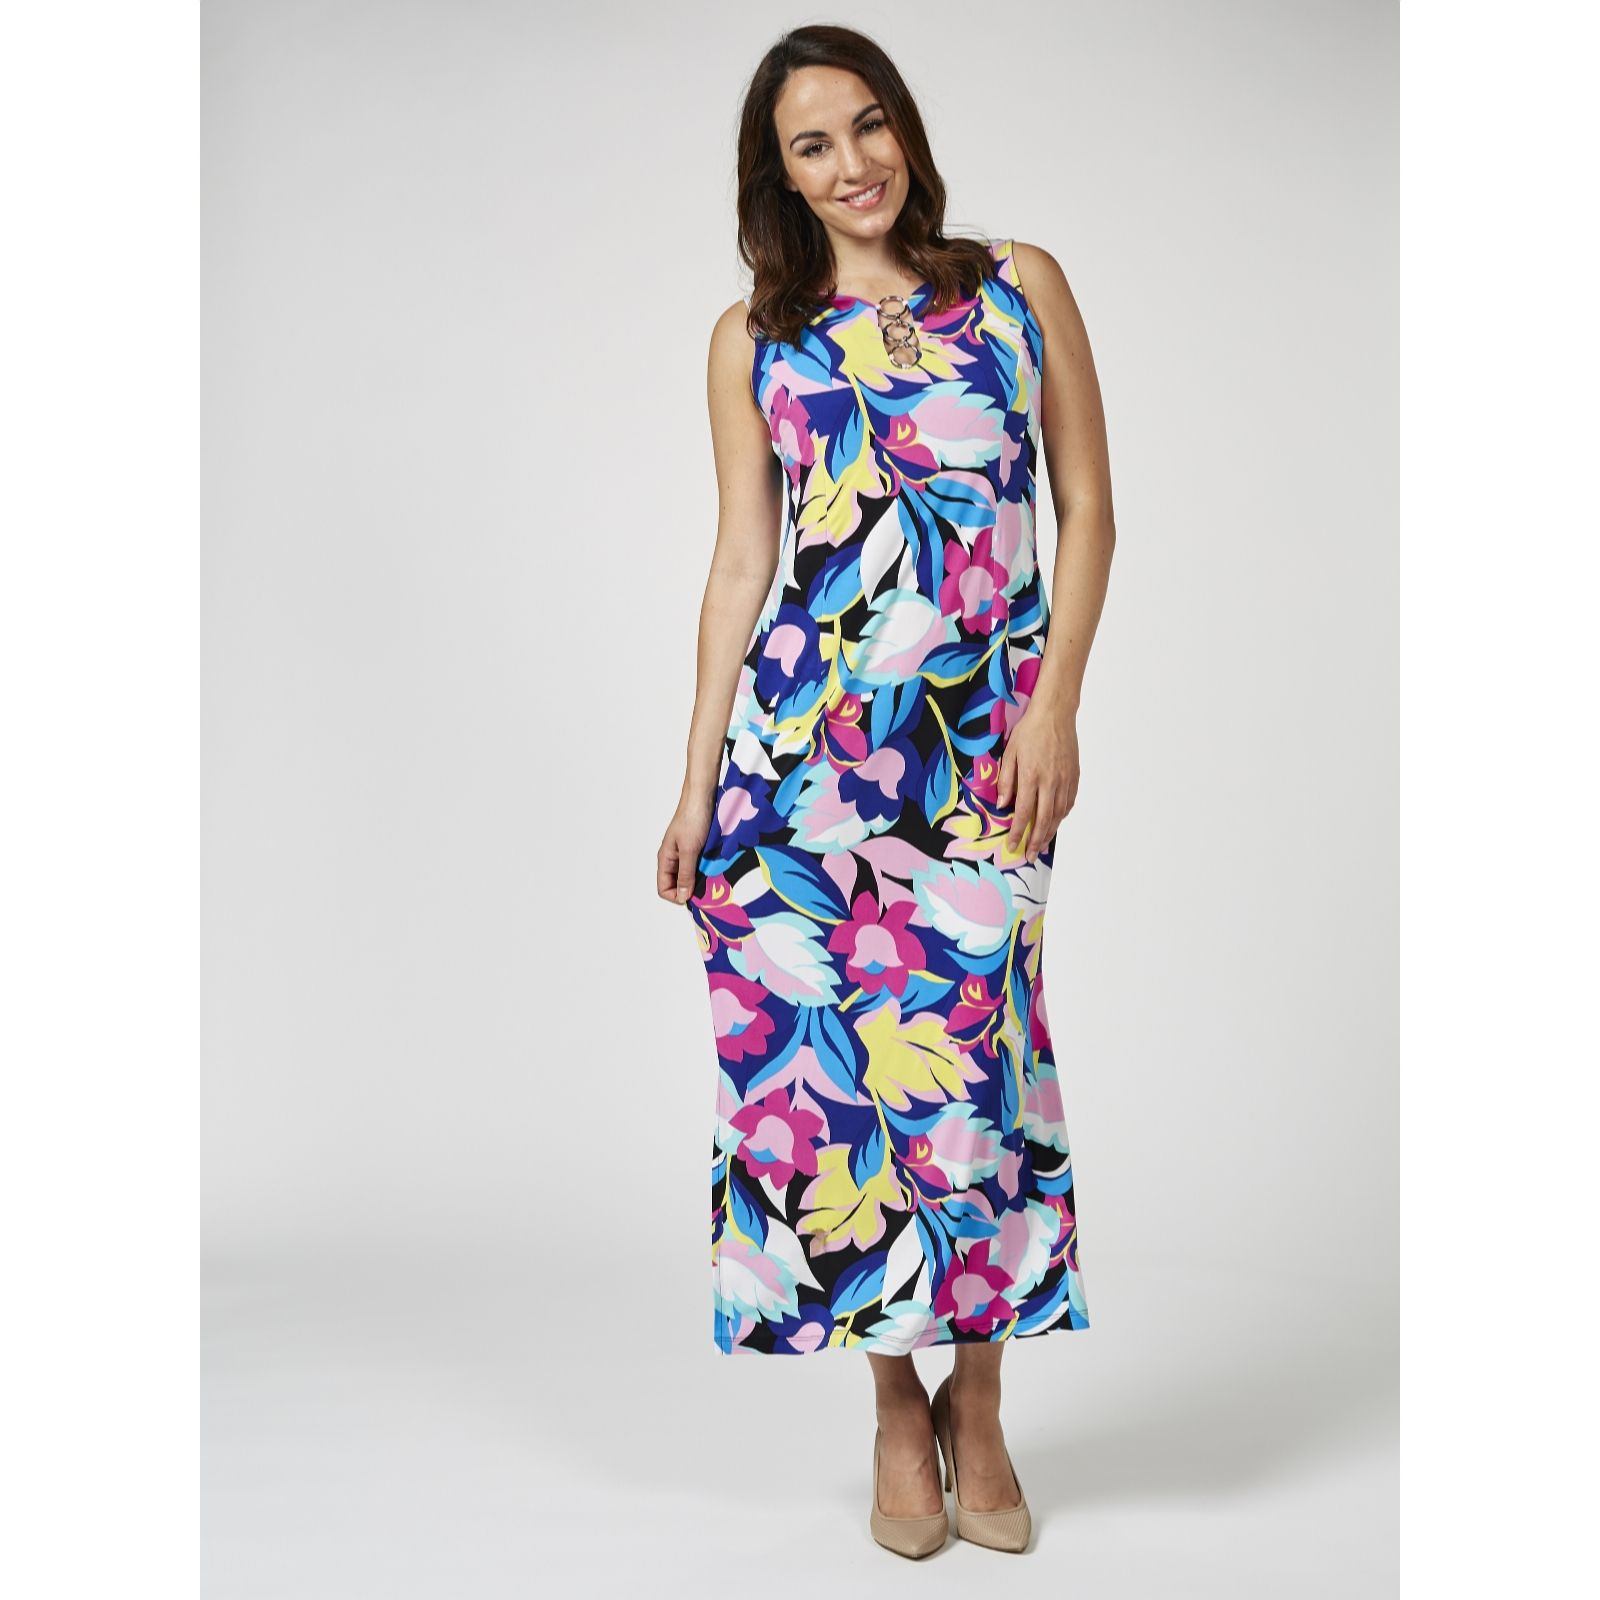 19a62b6cf4a Coco Bianco Printed Jersey Maxi Dress Petite - QVC UK